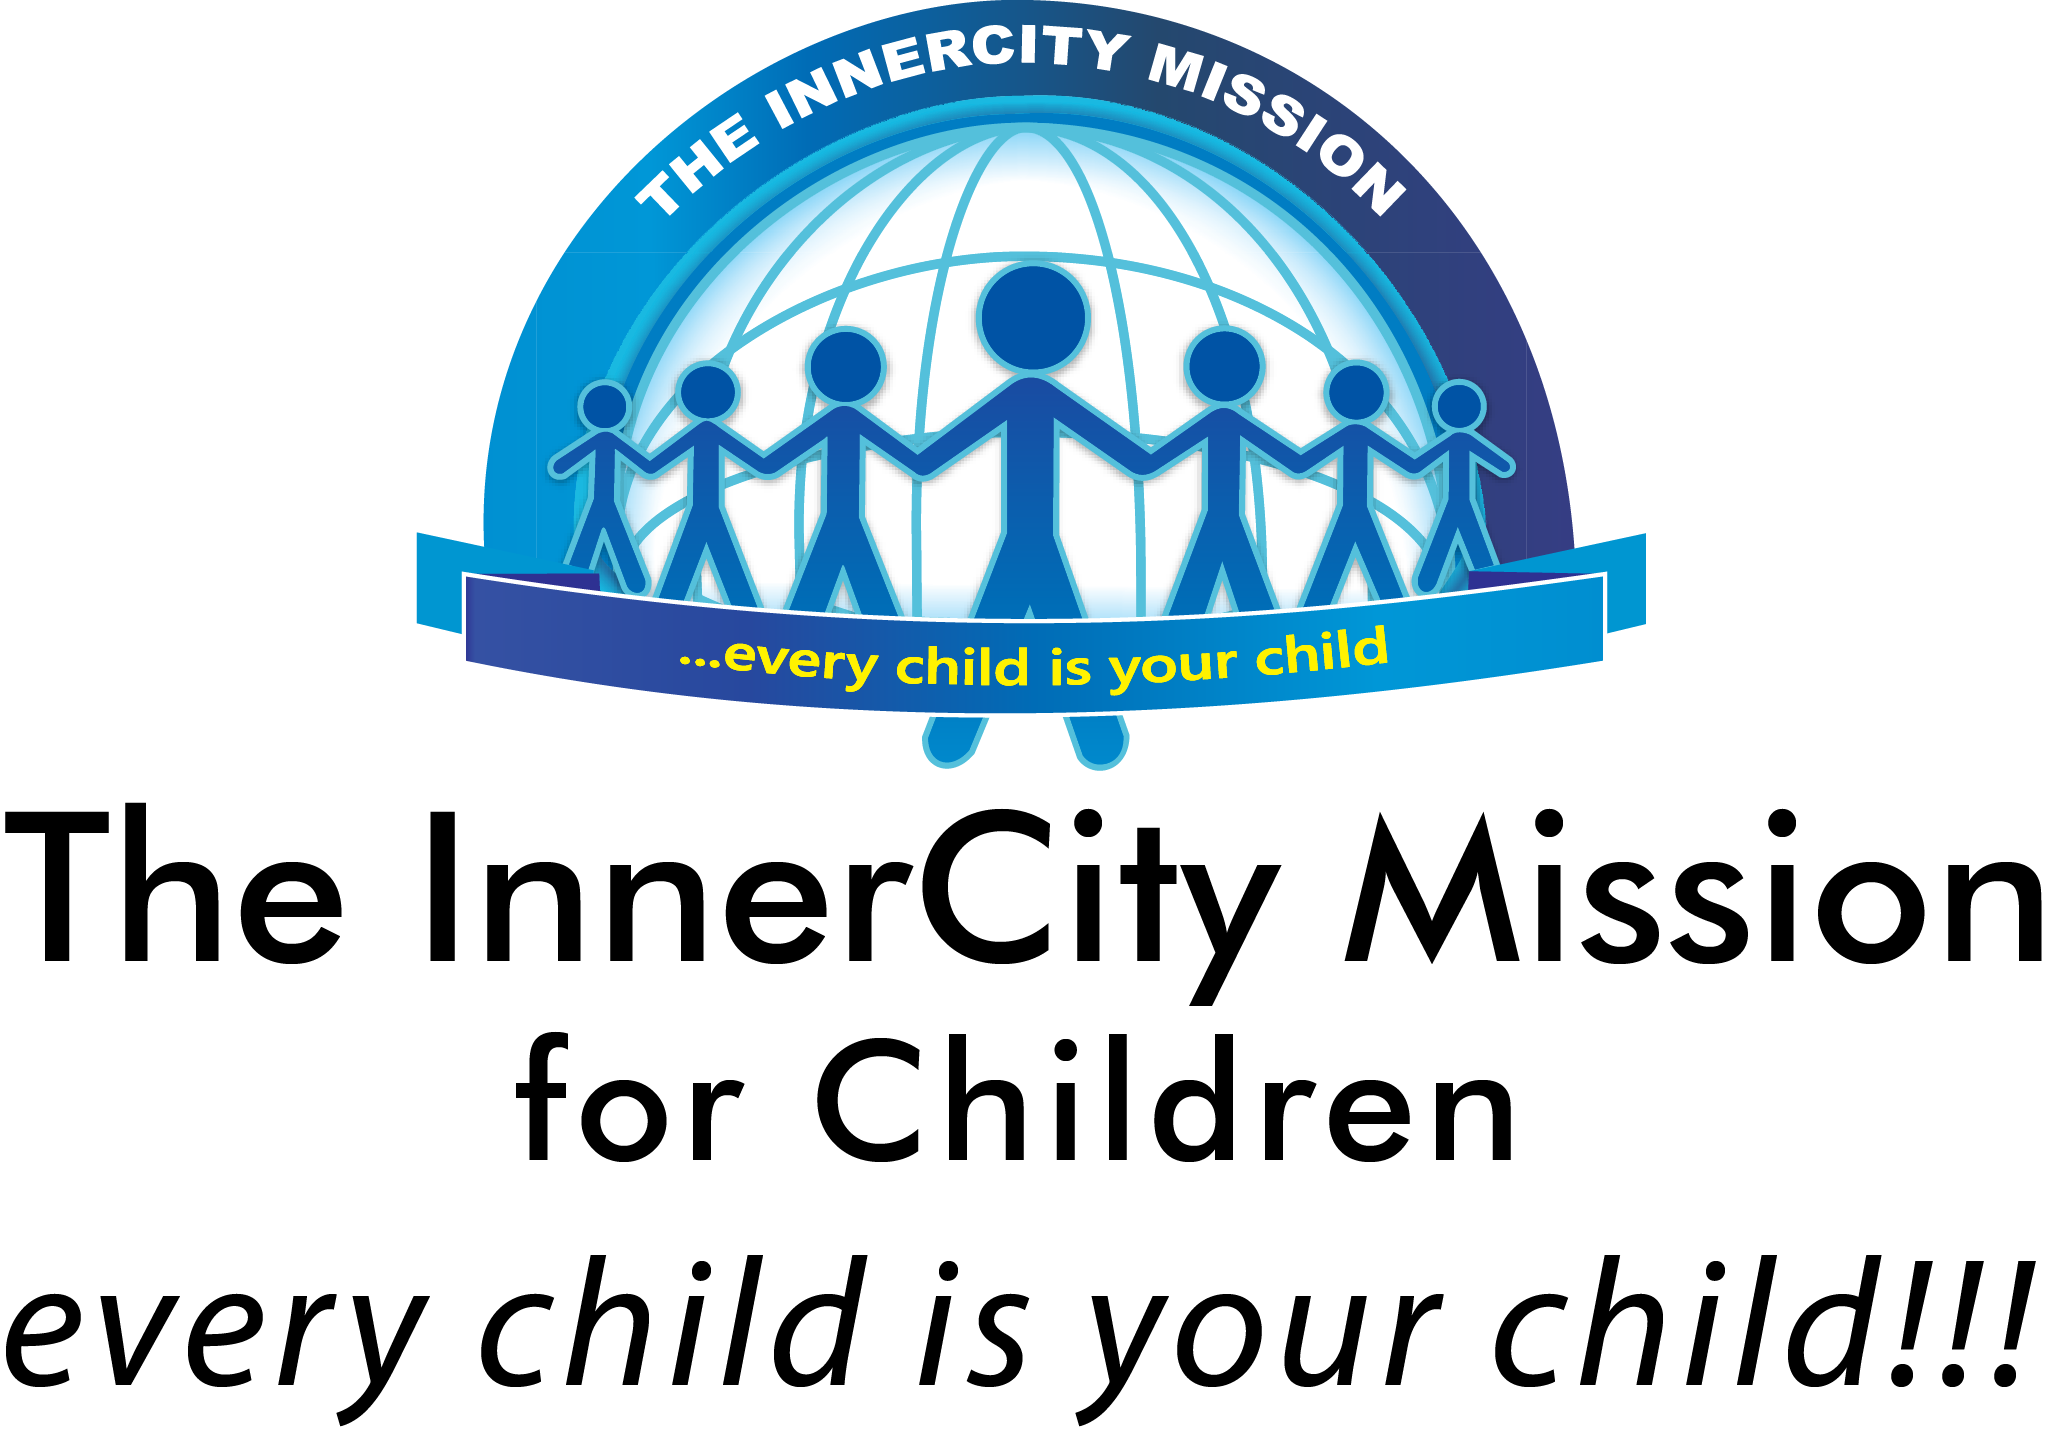 The InnerCity Mission for Children